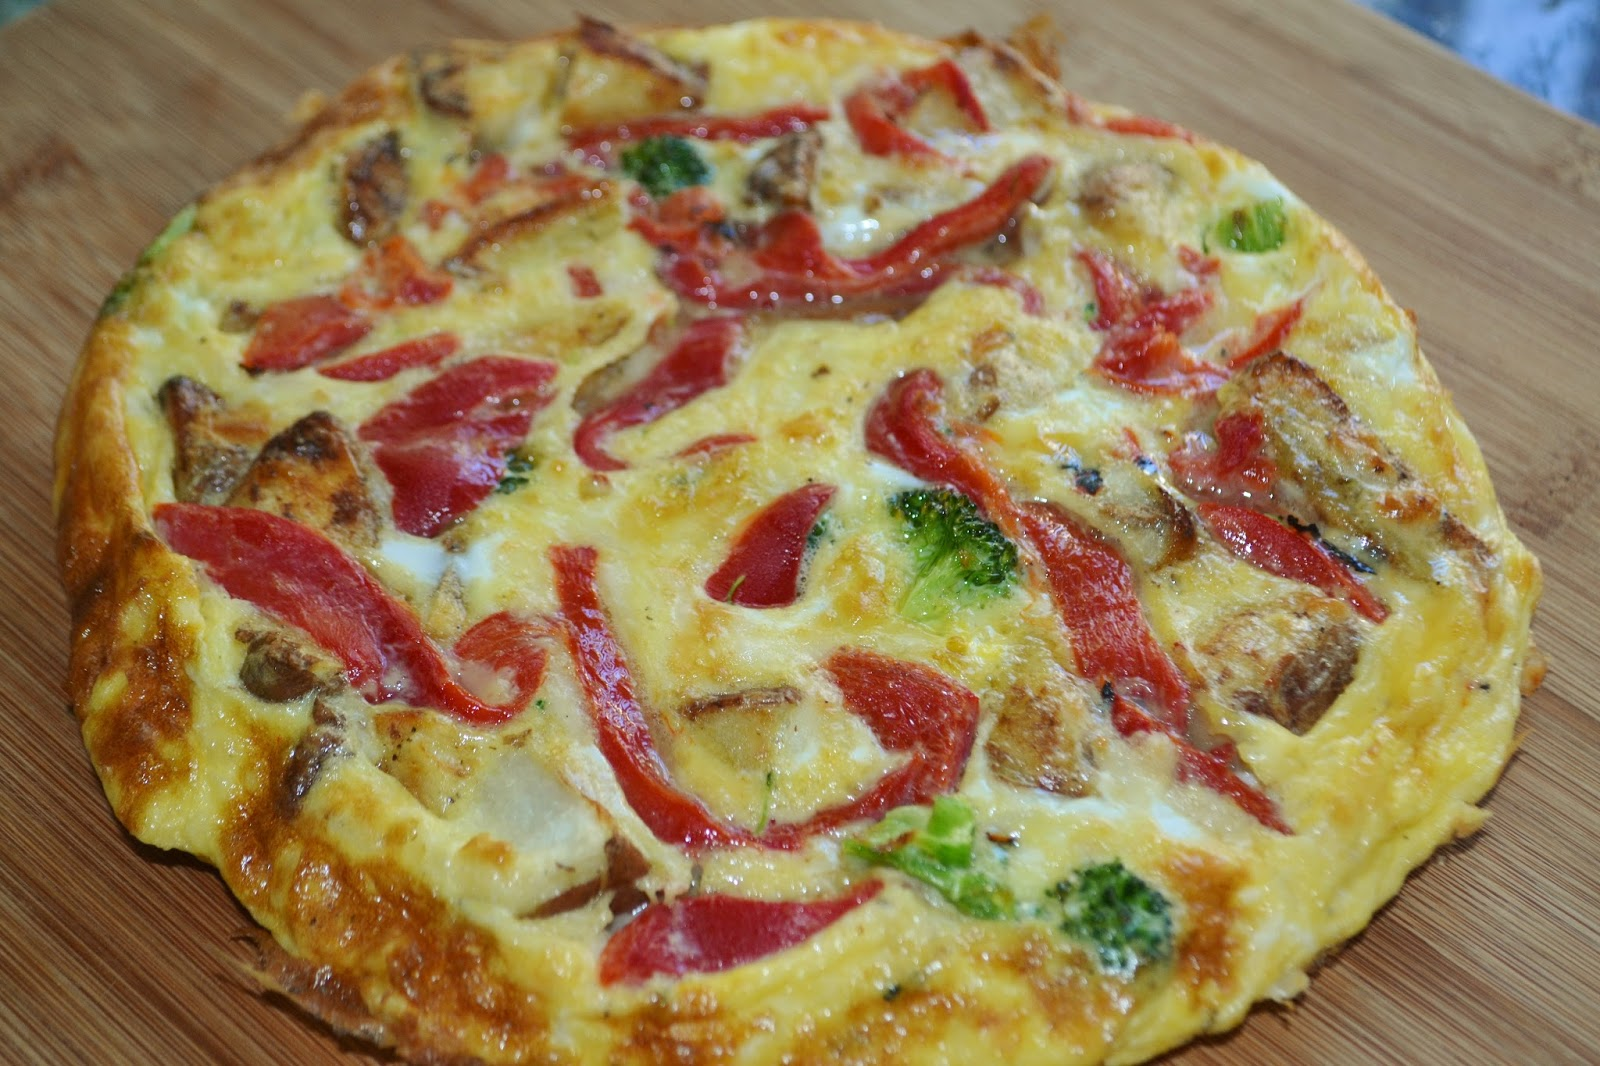 ... Roasted Bell Pepper, Red Potato, Broccoli and Provolone Frittata for